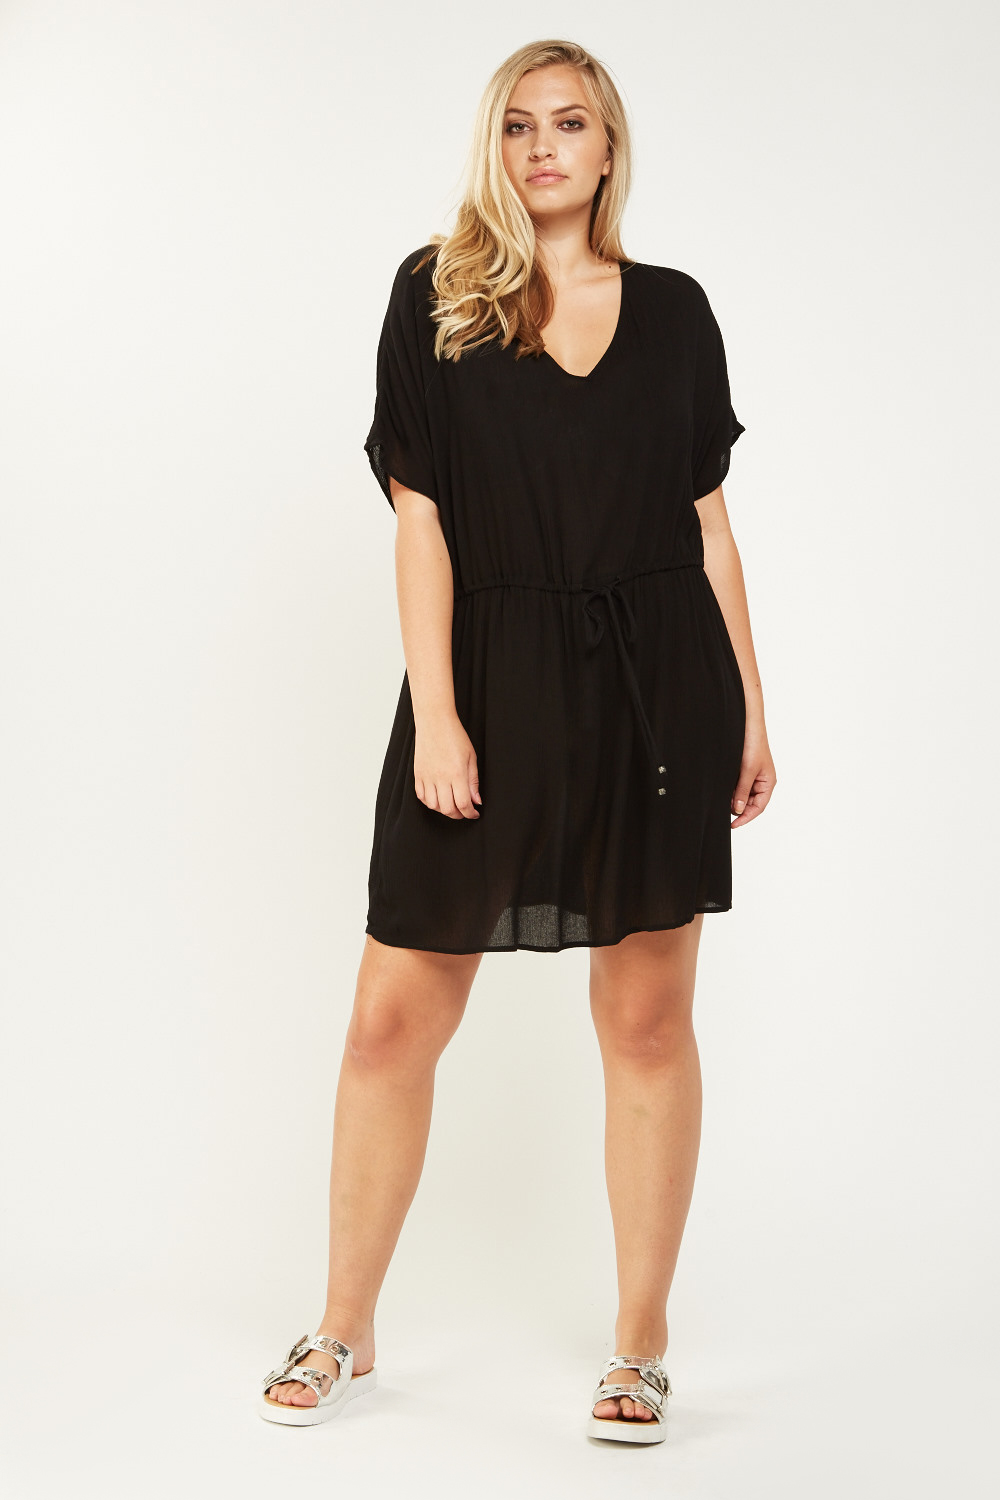 1653ab0f29 Black Sheer Cover Up Dress - Just £5